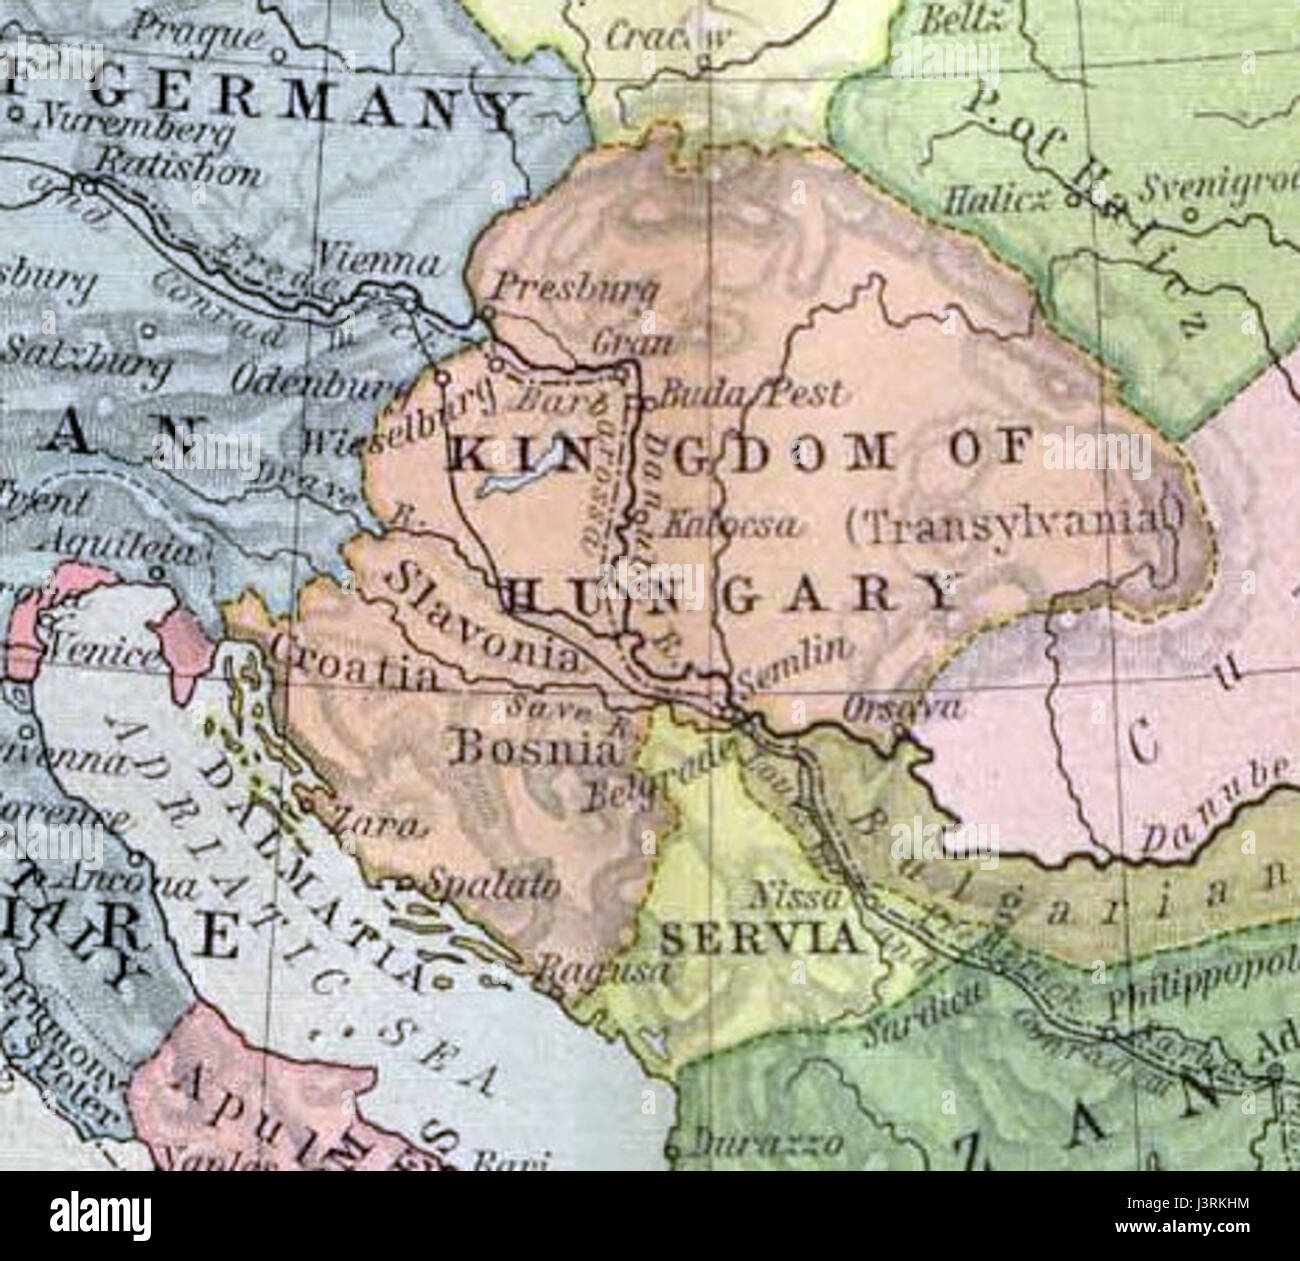 Kingdom Of Hungary Map on habsburg monarchy, siege of vienna map, kingdom of prussia, sukhothai kingdom map, duchy of burgundy map, holy crown of hungary, great moravia, republic of macedonia map, hungarian people, frankish kingdom map, republic of china map, democratic republic of the congo map, republic of florence map, kingdom of hungary 1910, hungarian language, mushroom kingdom map, union of soviet socialist republics map, mongol invasion of europe, house of habsburg, treaty of trianon, kingdom of hungary flag, stephen i of hungary, battle of varna, confederate states of america map, kingdom of yugoslavia, kingdom of hungary in world war 2, hungary counties map, kingdom of bohemia, kingdom of hungary in 1400, revolution of 1848 map, socialist federal republic of yugoslavia, ayutthaya kingdom map, confederation of the rhine map, john hunyadi,